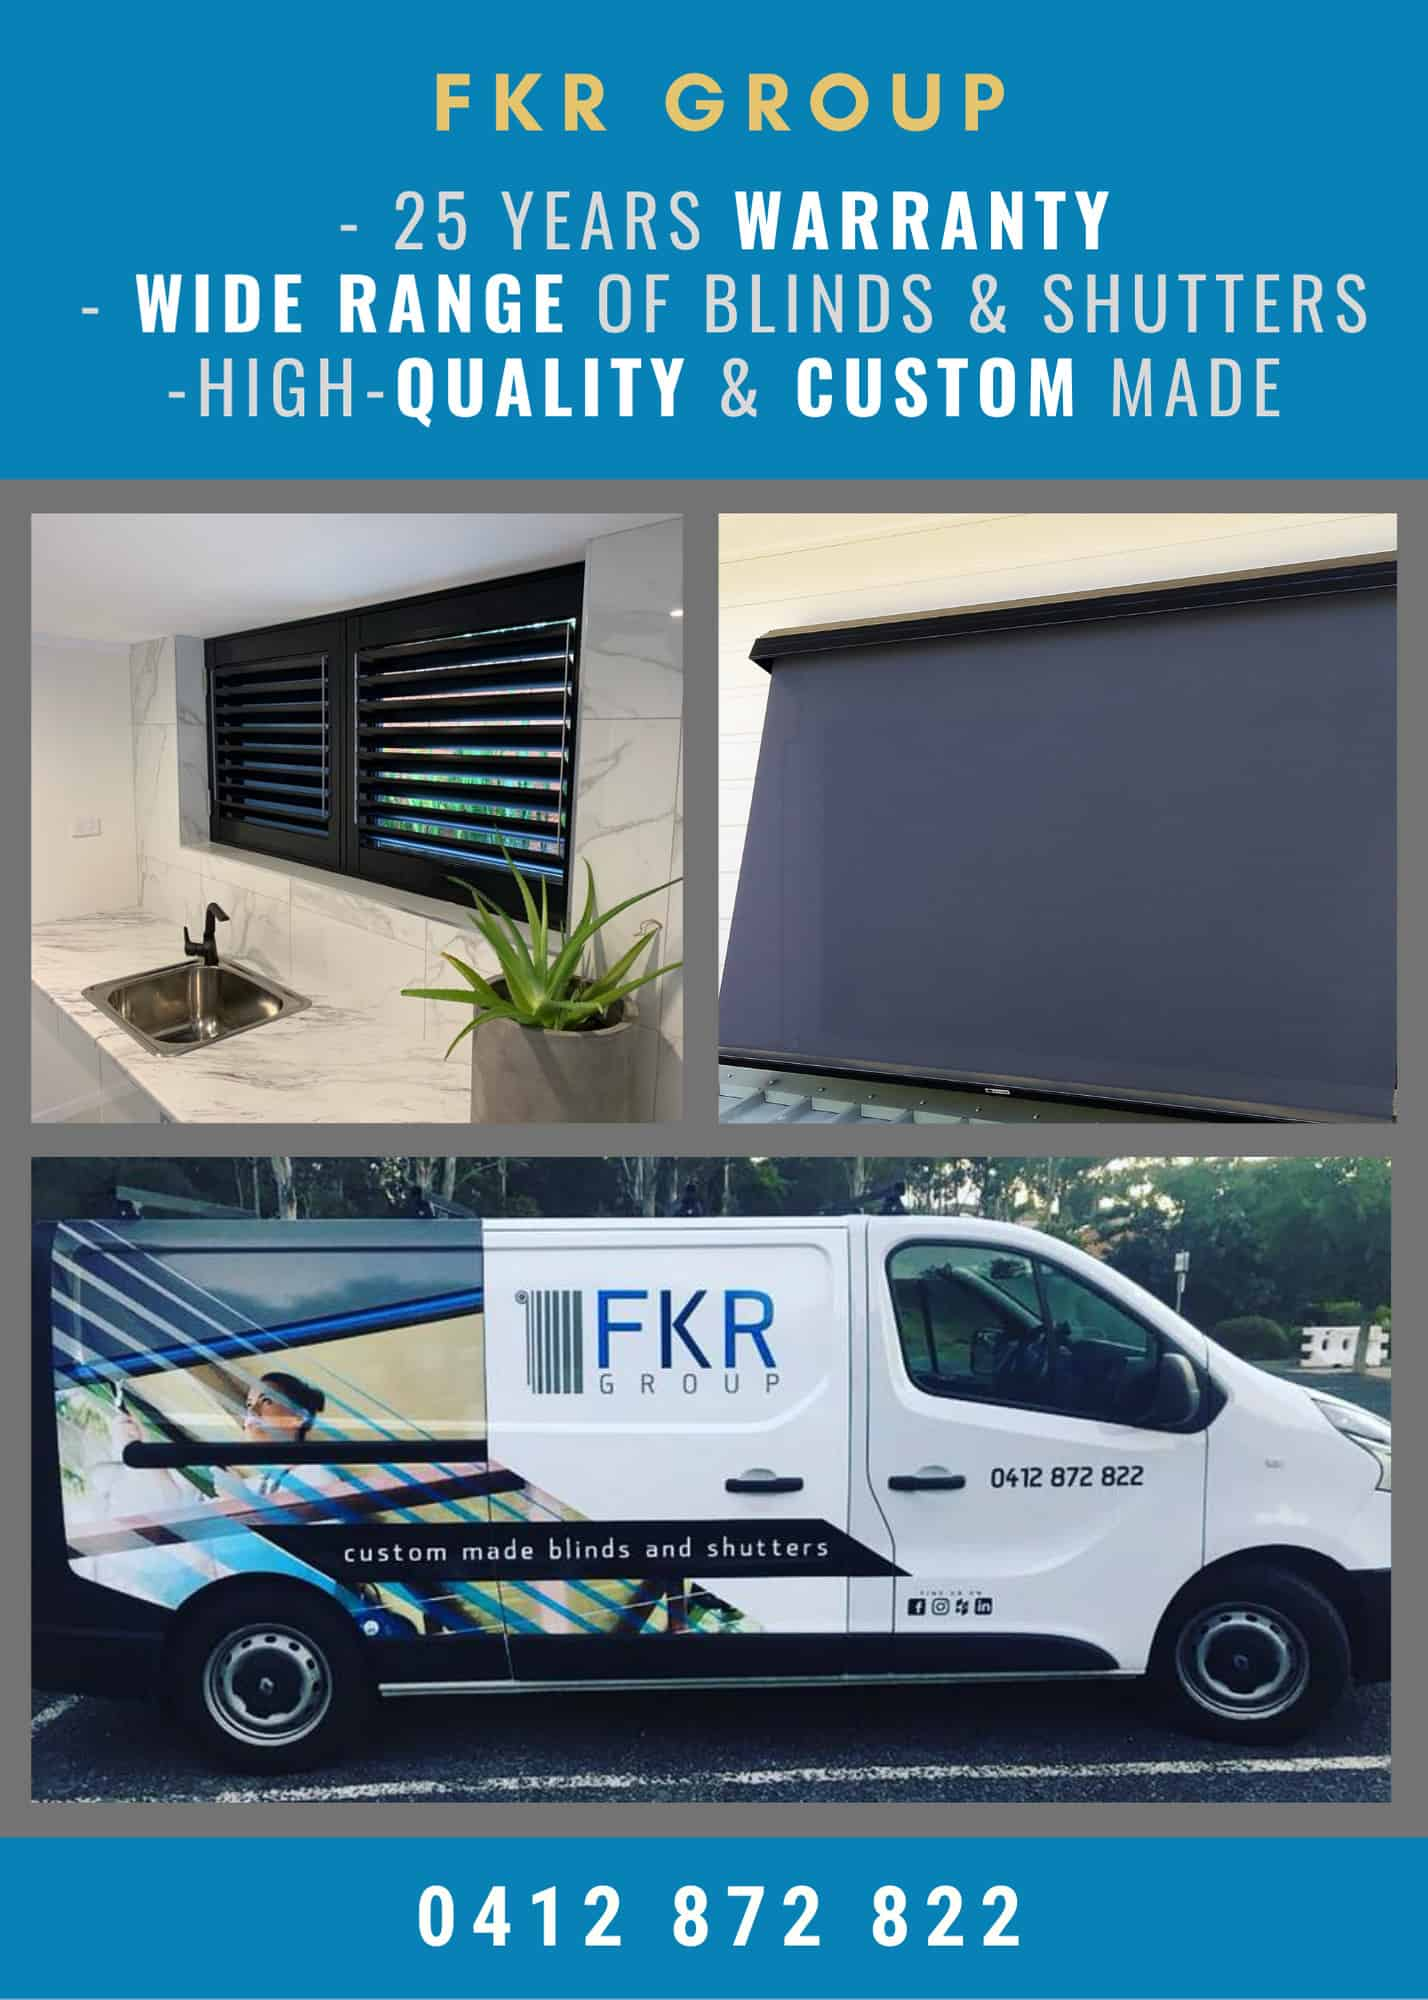 About FKR Group